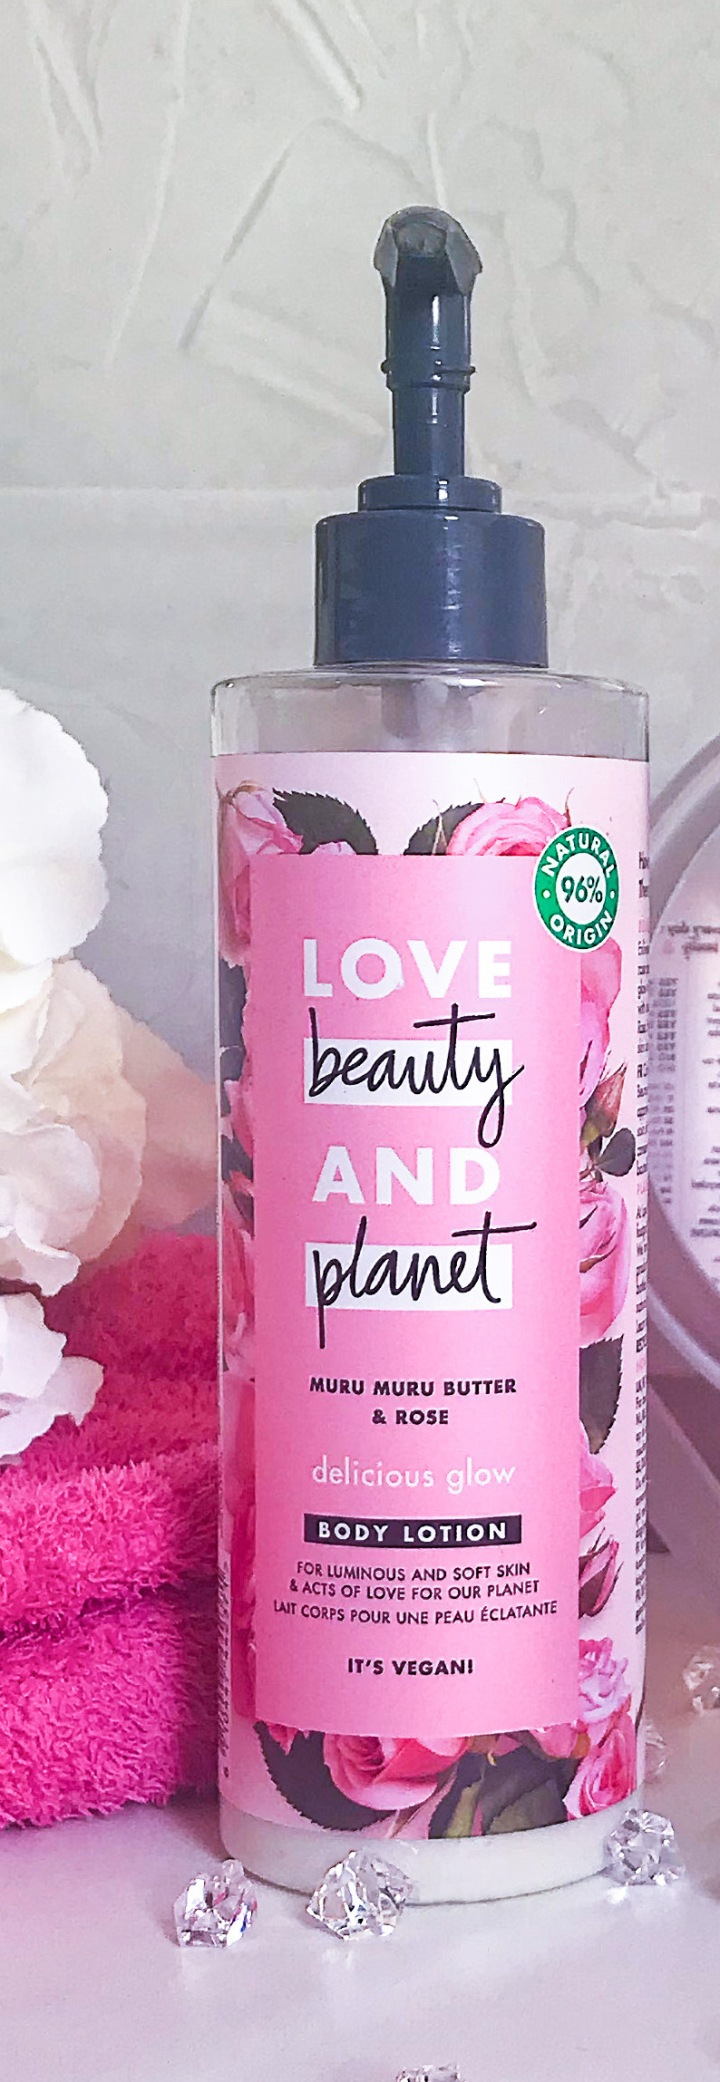 LOVE BEAUTY AND PLANET ÇA VOUS DIT QUELQUE CHOSE ? / LOVE BEAUTY AND PLANET DOES IT TELL YOU SOMETHING ?